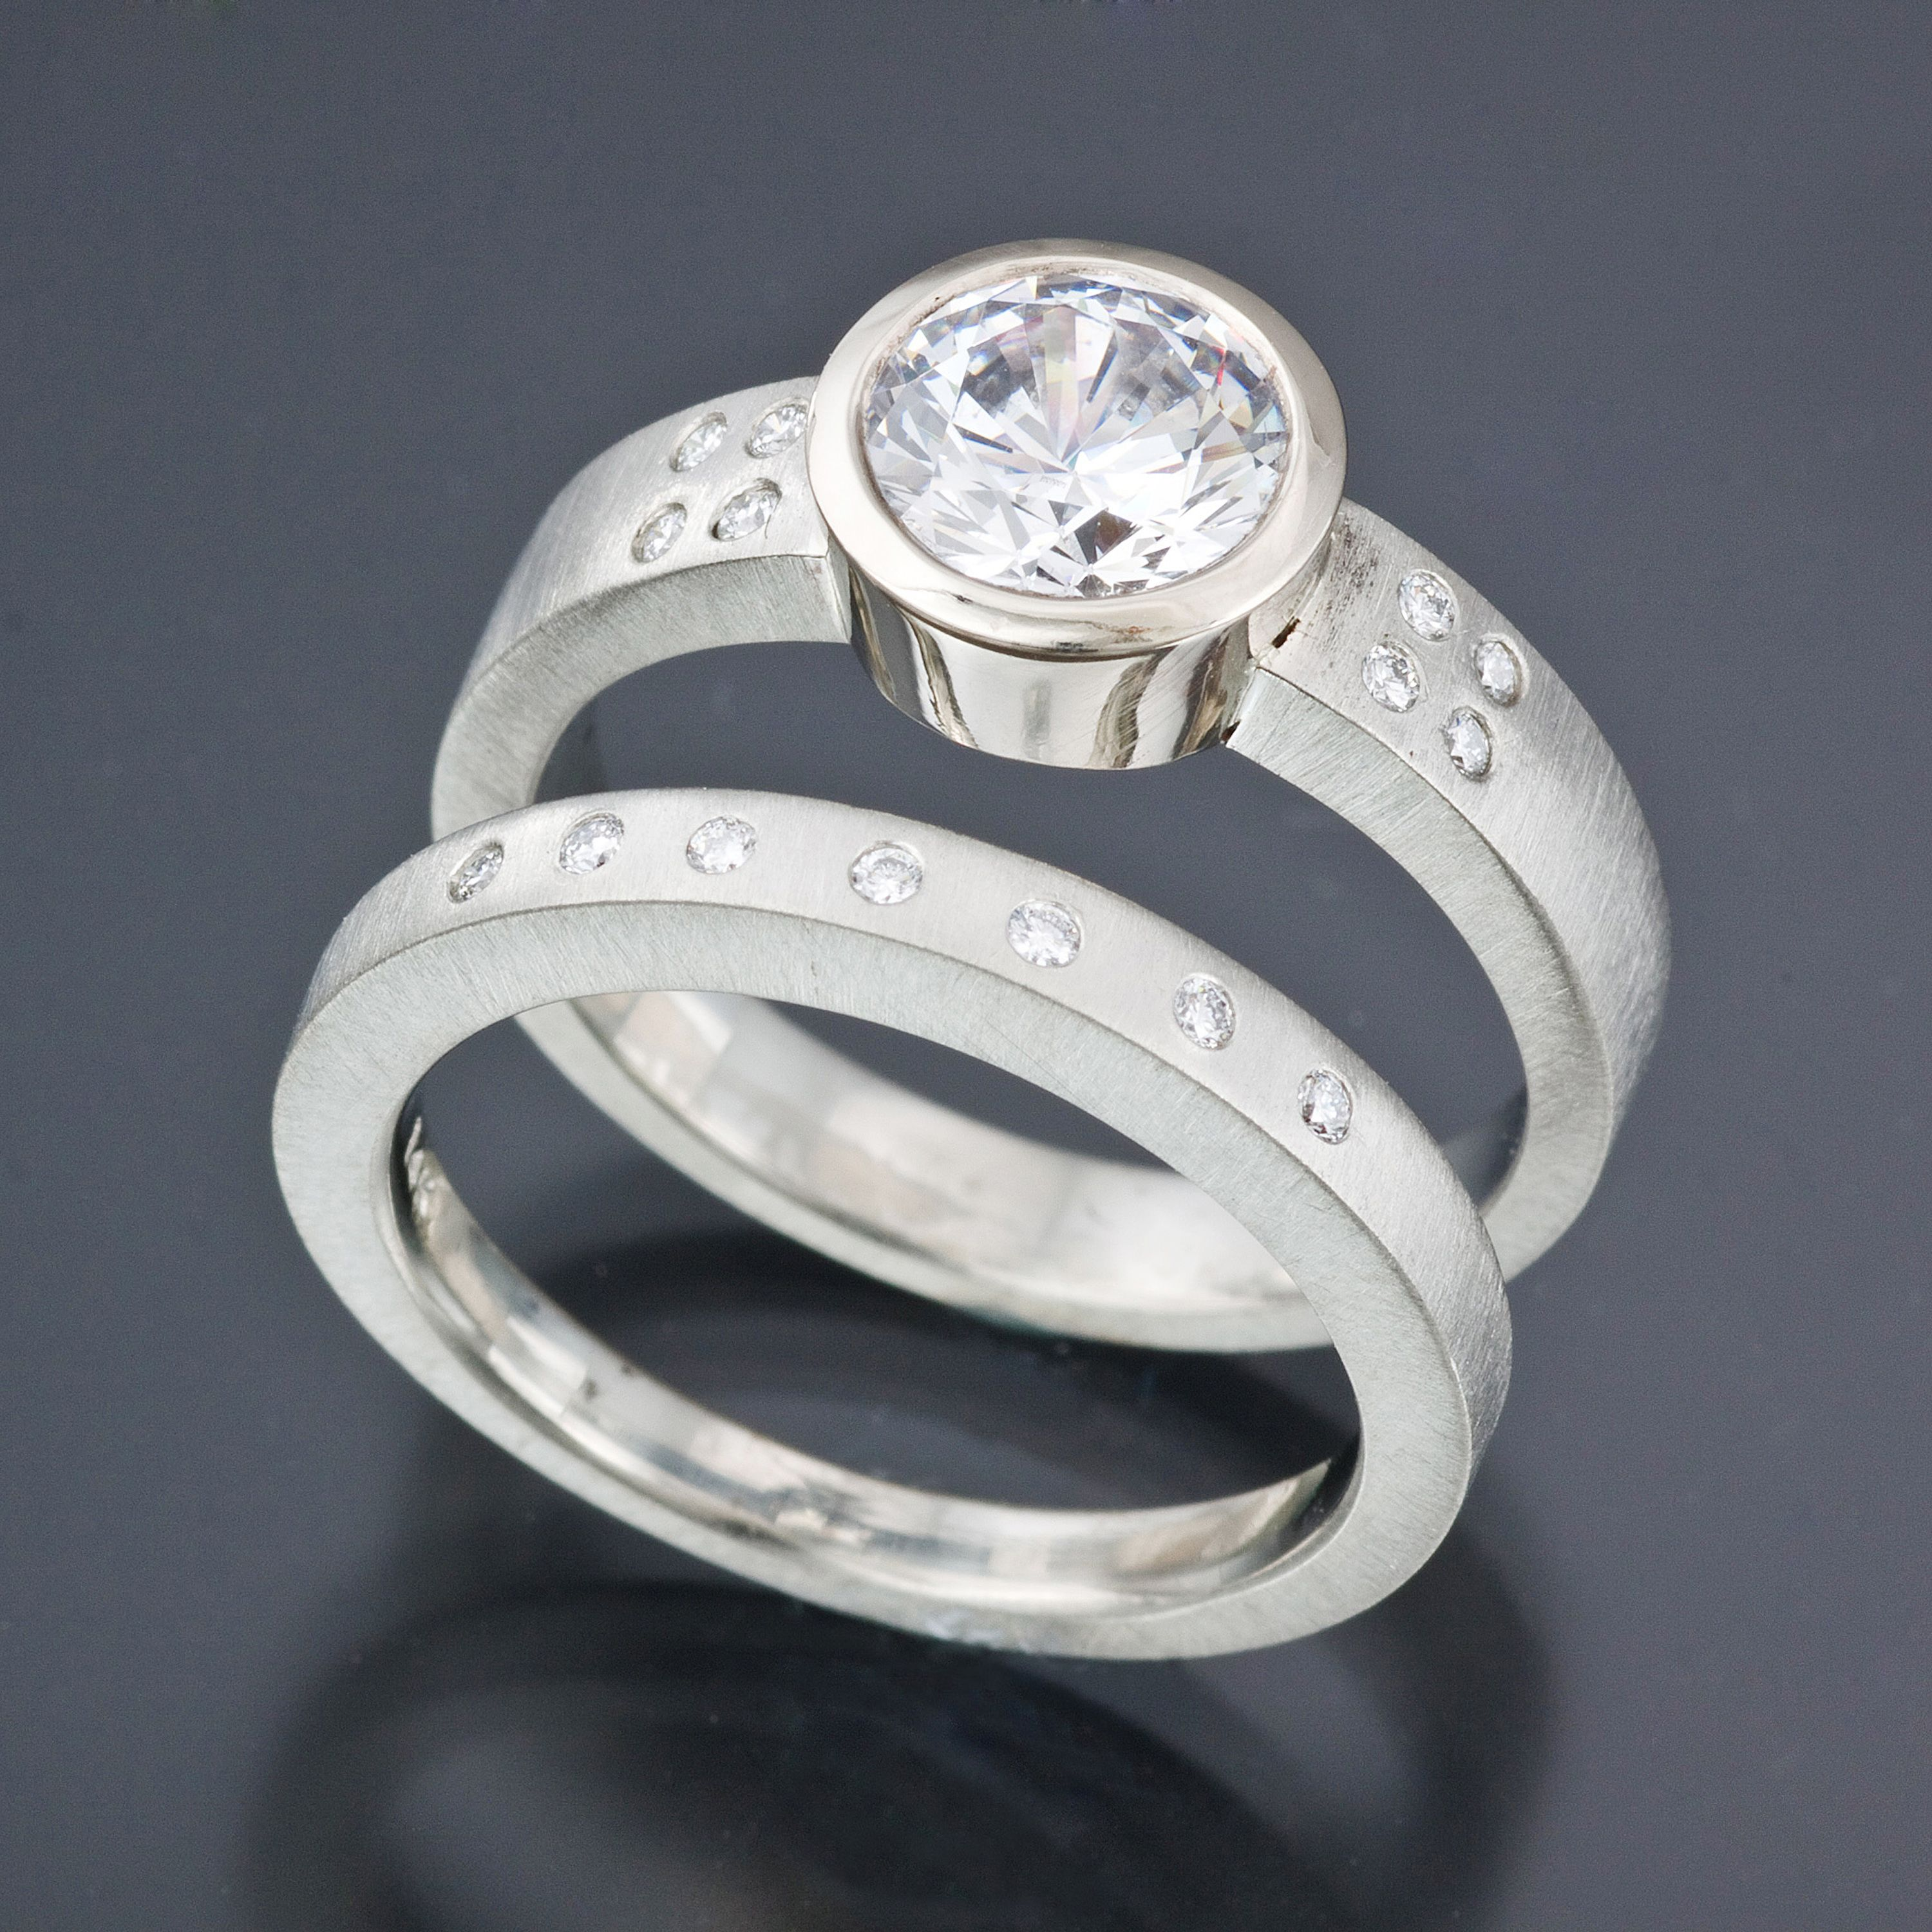 14k white gold engagement ring and wedding band set with accent